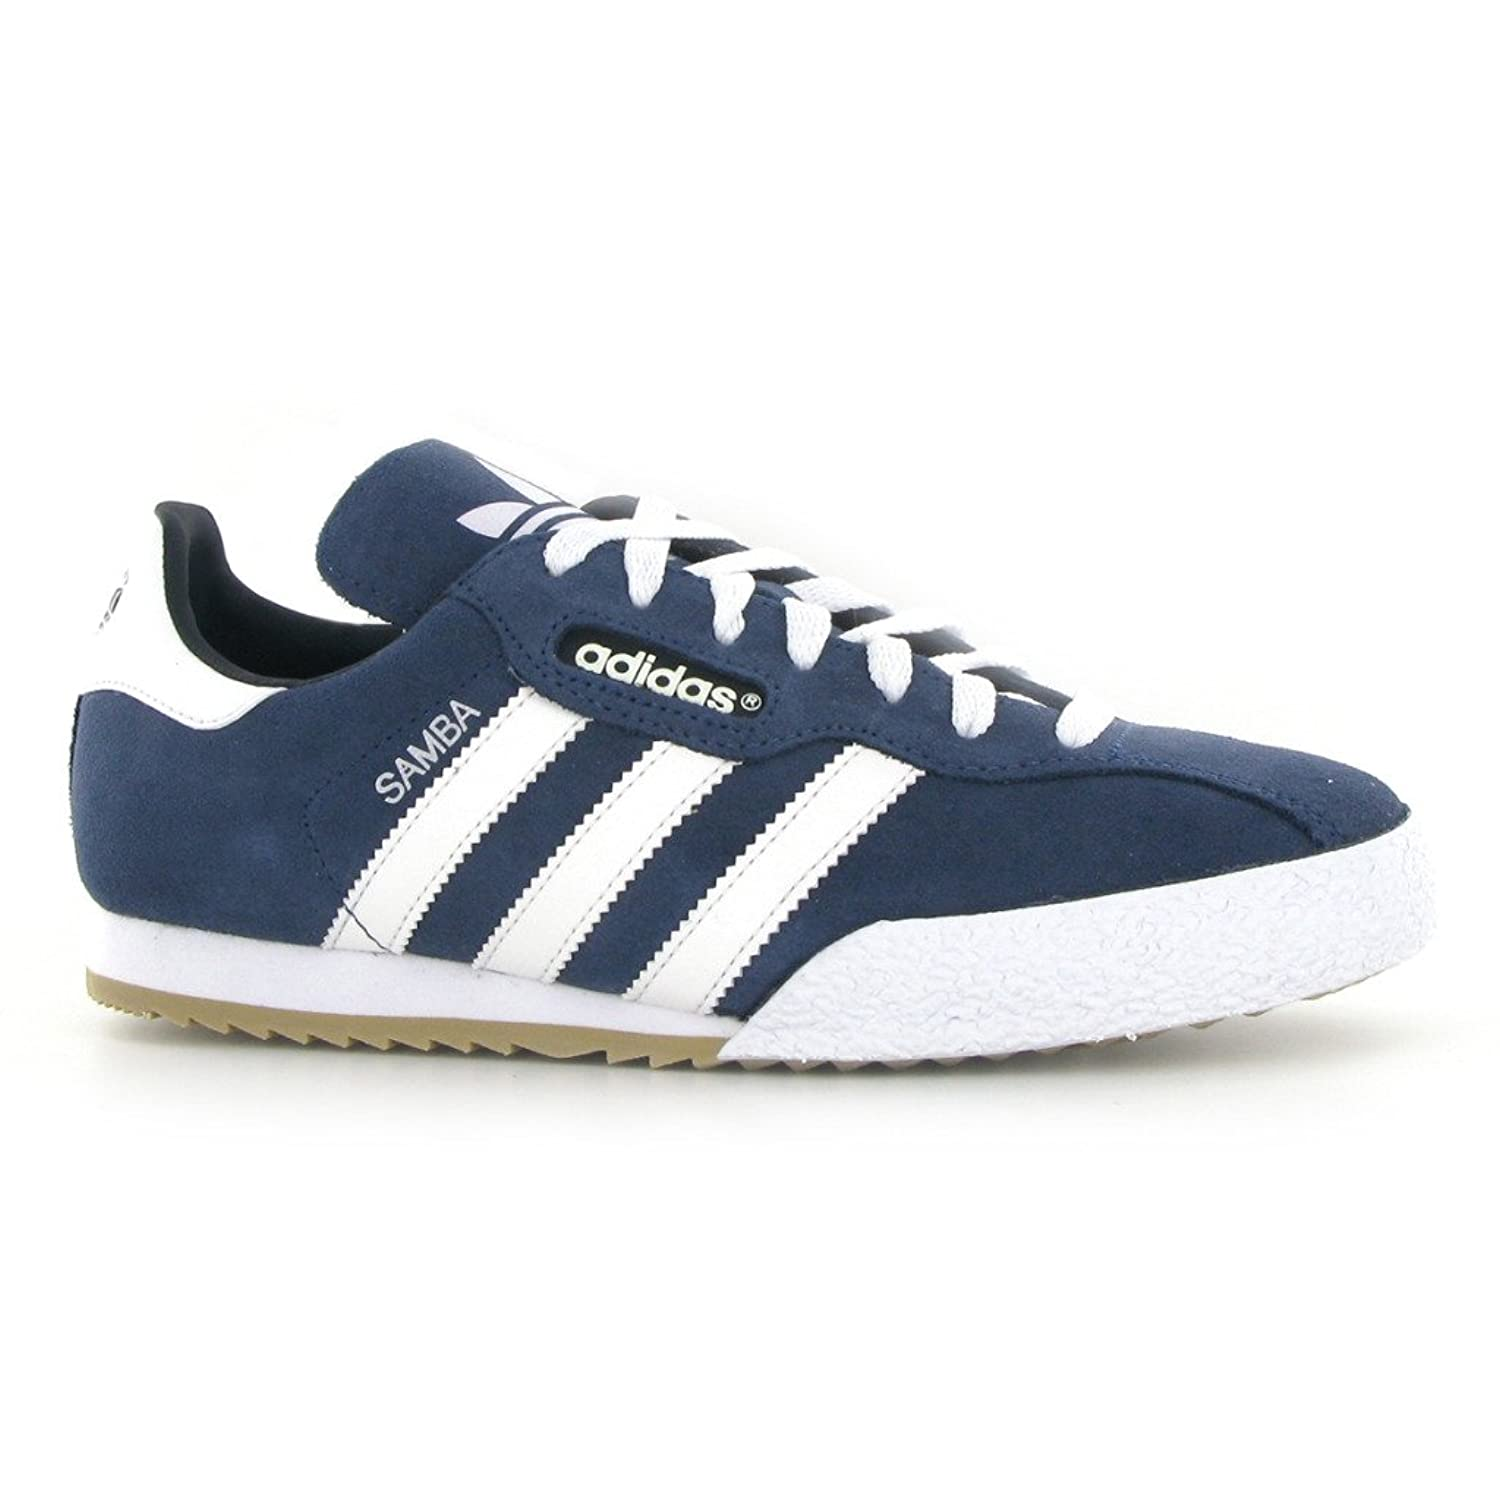 buy popular 600a5 24f06 adidas Originals Samba Super Suede Trainer Blue Leather Trainers Shoes  019332